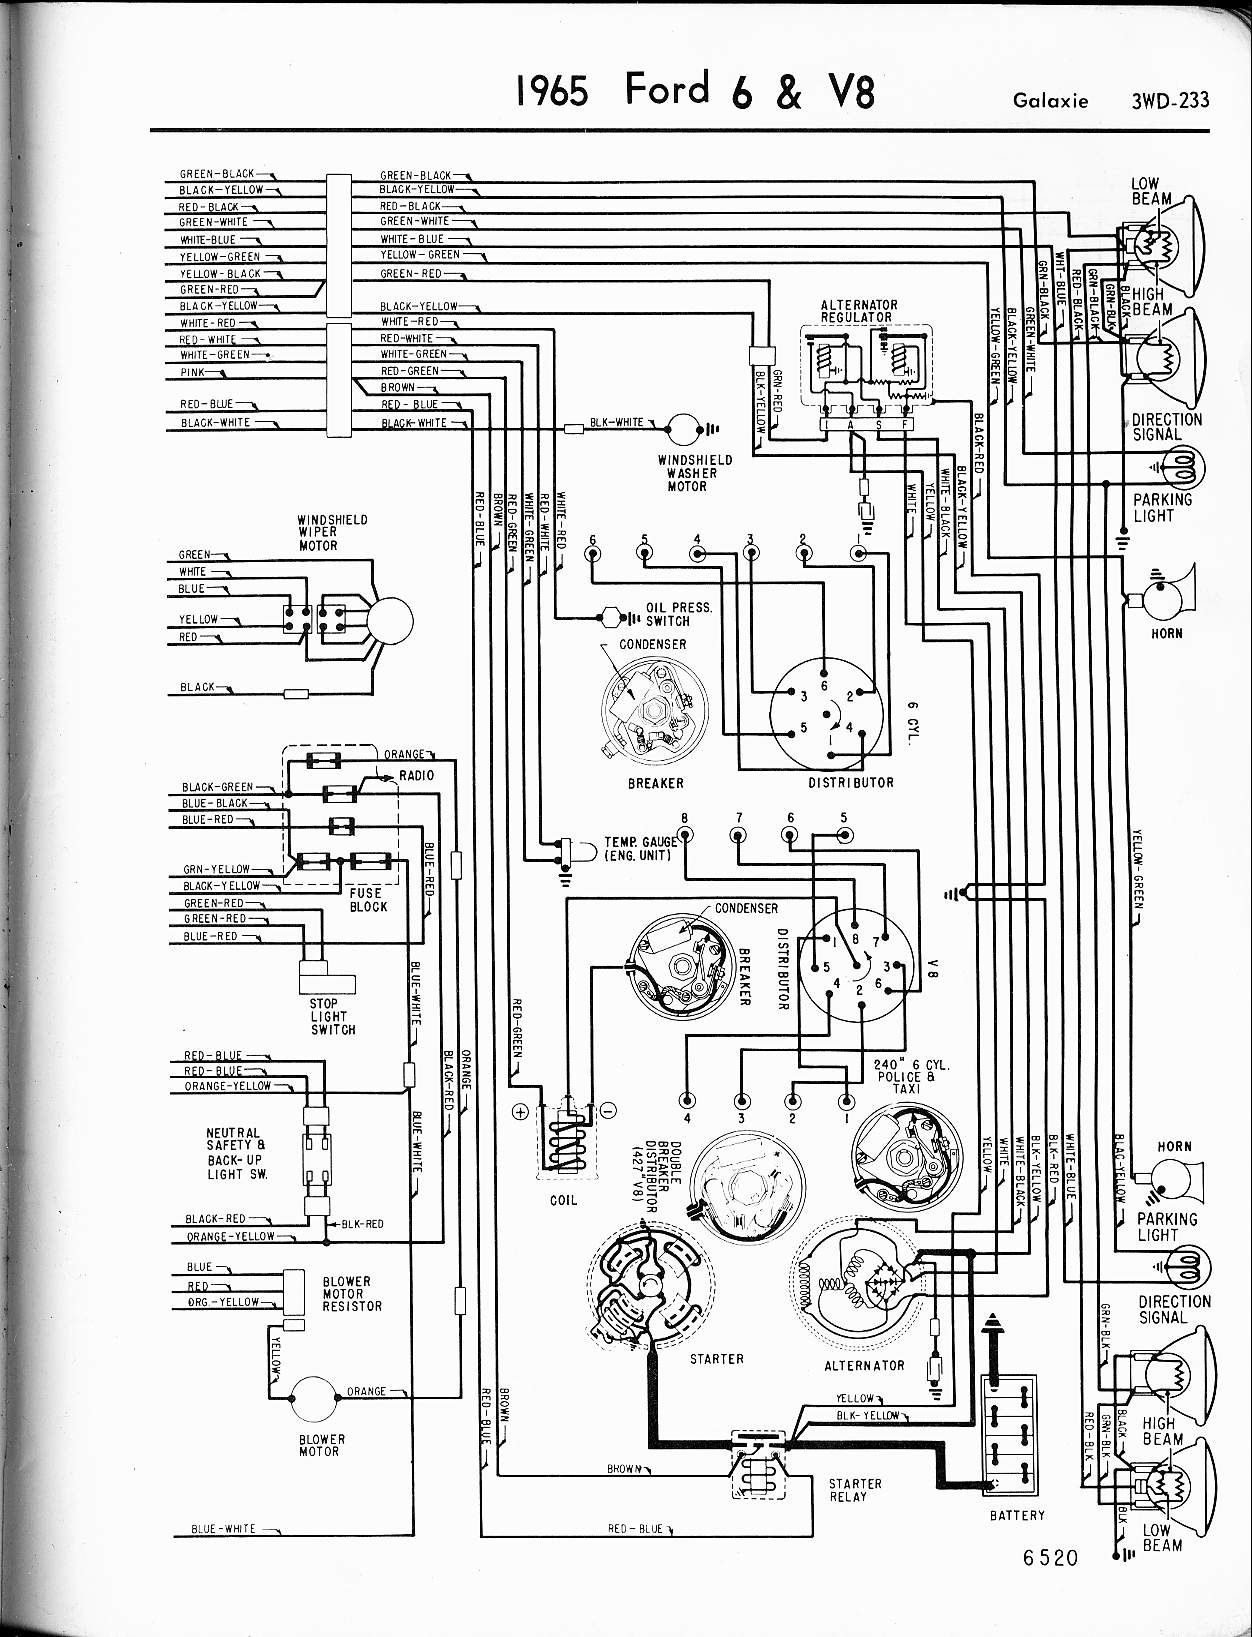 P 0996b43f81b3db56 moreover 2001 Mercury Grand Marquis Wiring Diagrams Hecho furthermore 94 Buick Lesabre Wiring Diagram together with 131 Aurora V6 moreover Chevy Venture Pulley Diagram. on chevy lumina serpentine belt diagram